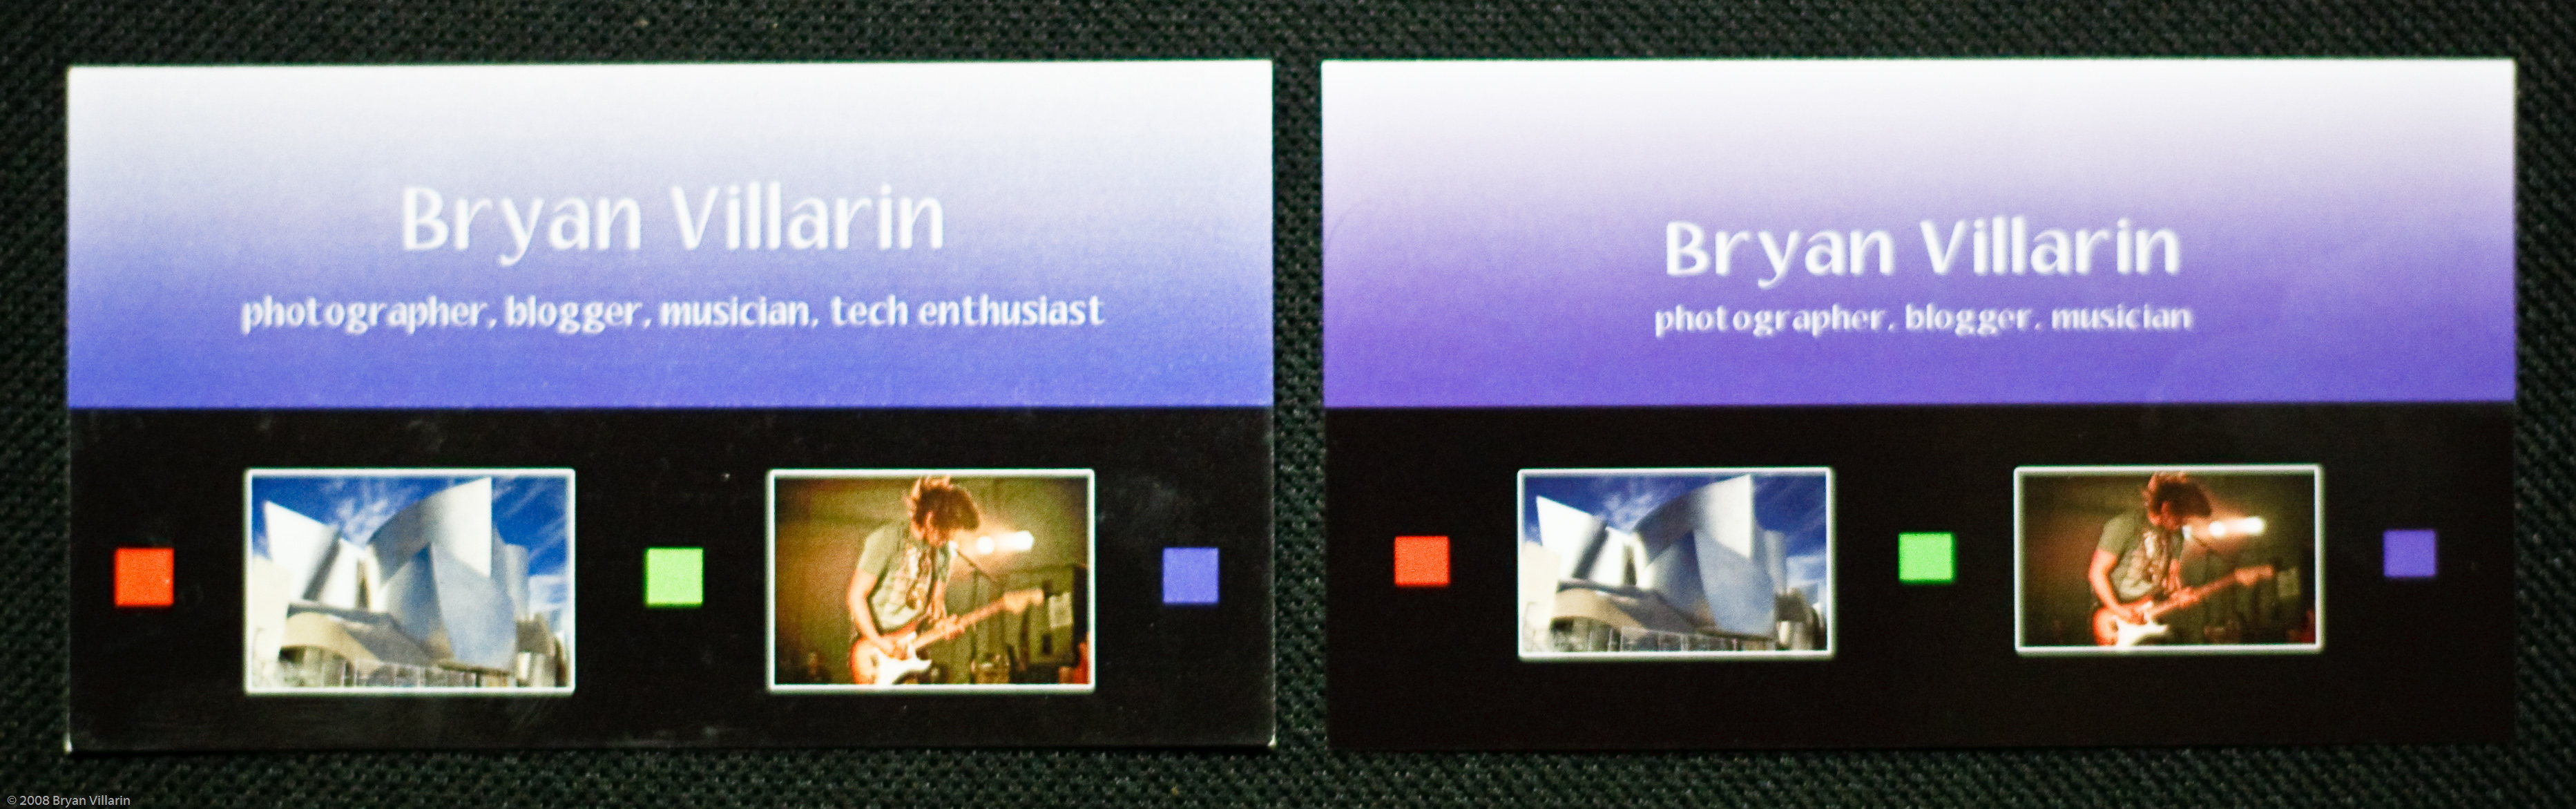 Gotprints for awesome and inexpensive business cards all narfed up mpix and gotprint business cards colourmoves